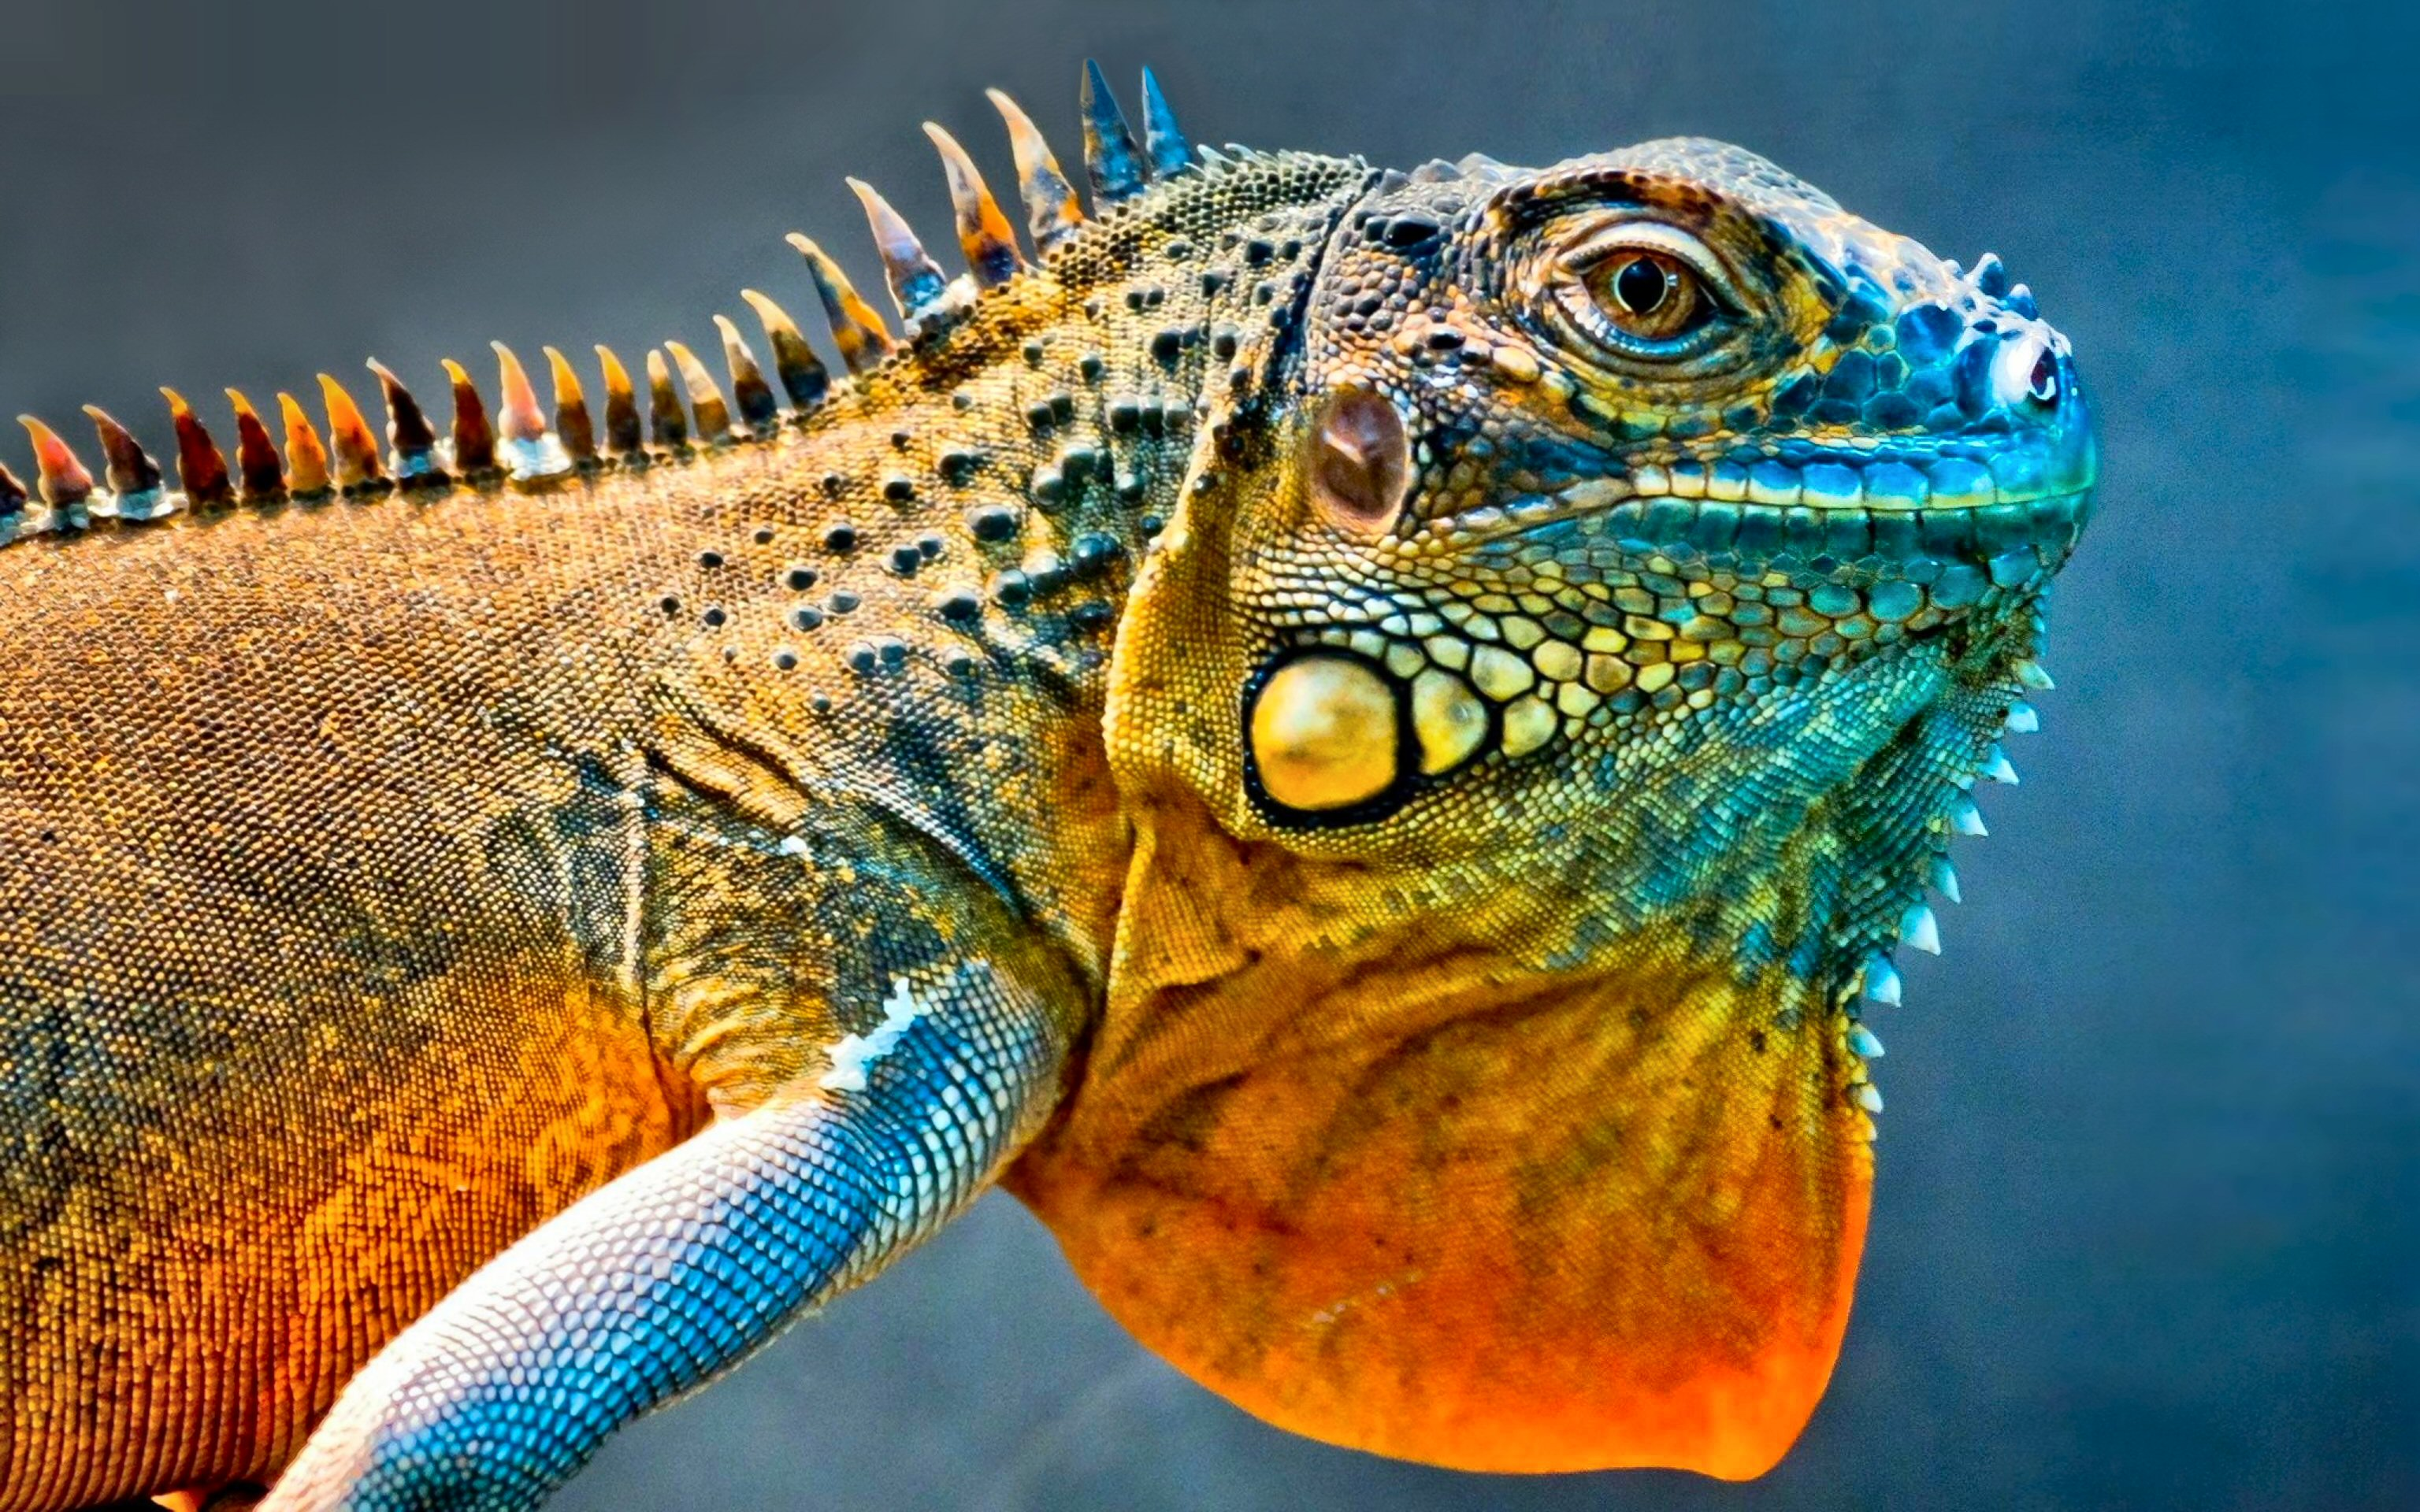 3072x1920 > Iguana Wallpapers